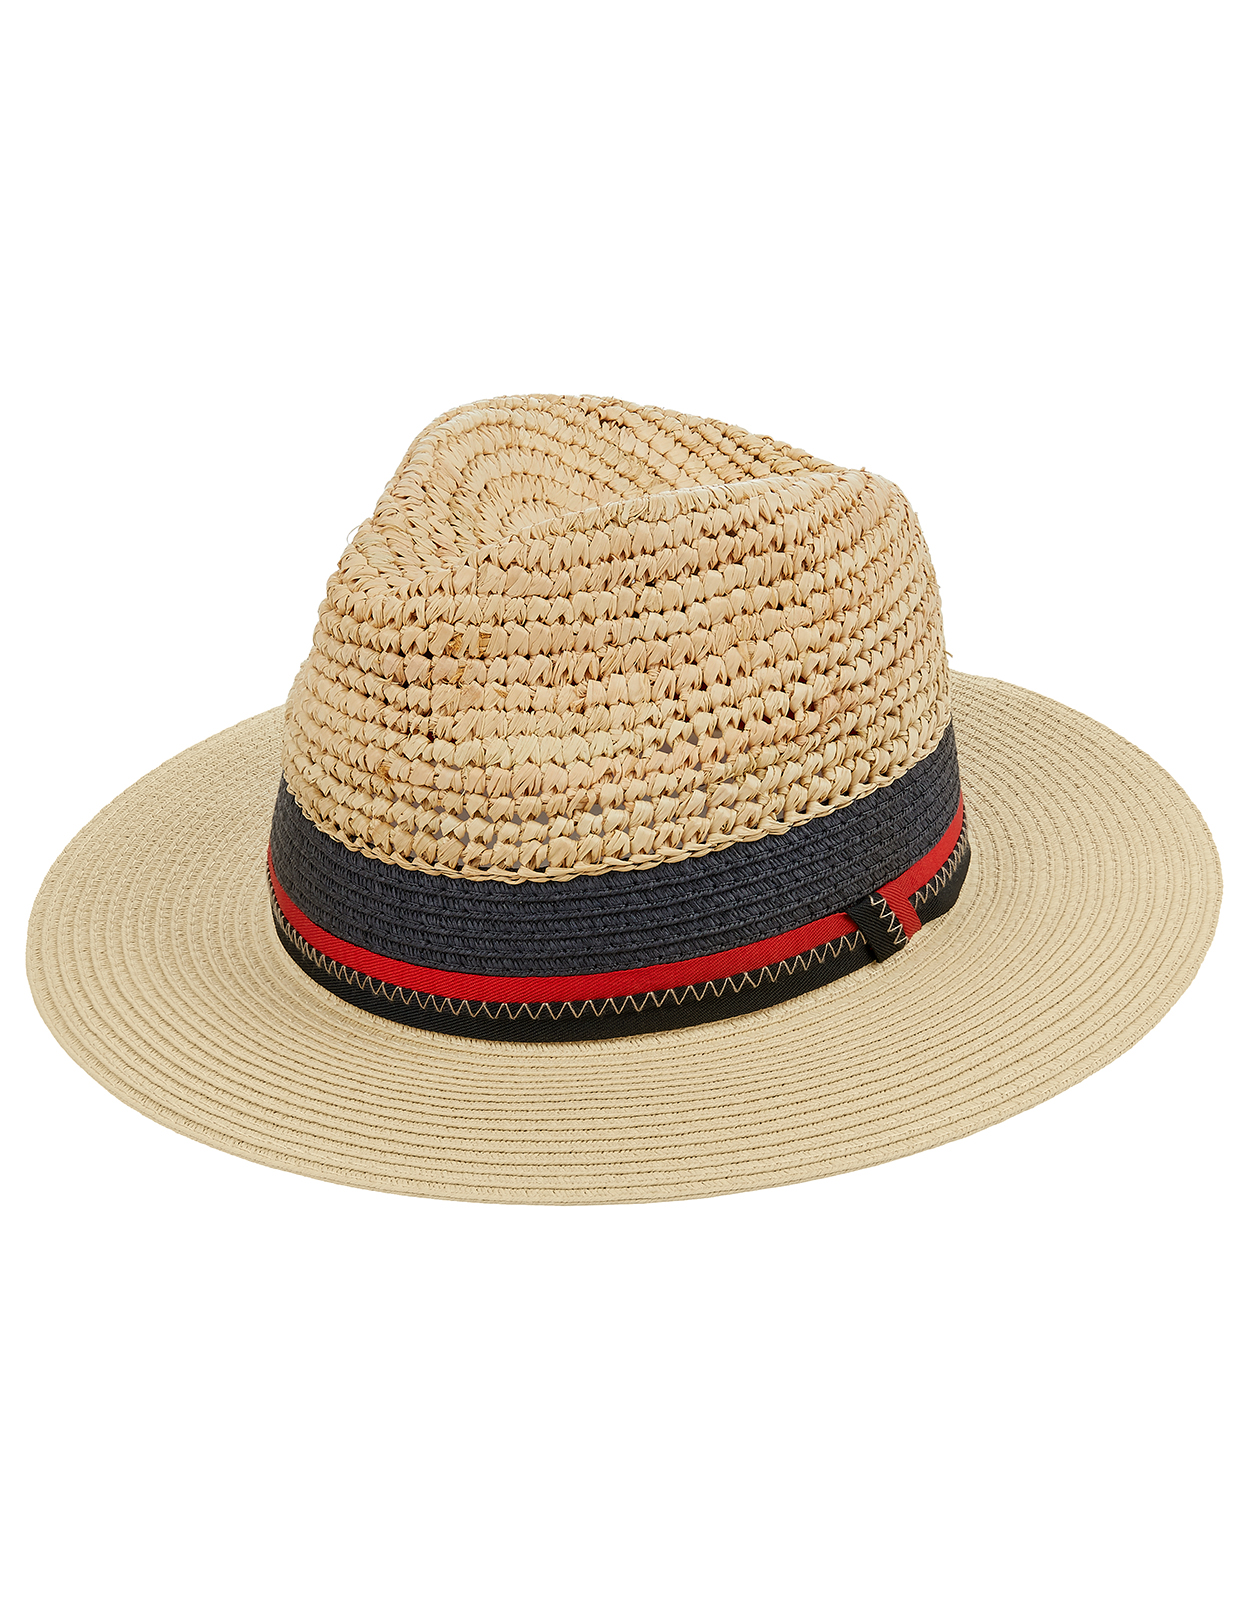 ACCESSORIZE FEDORA HAT £15.75 (SALE)